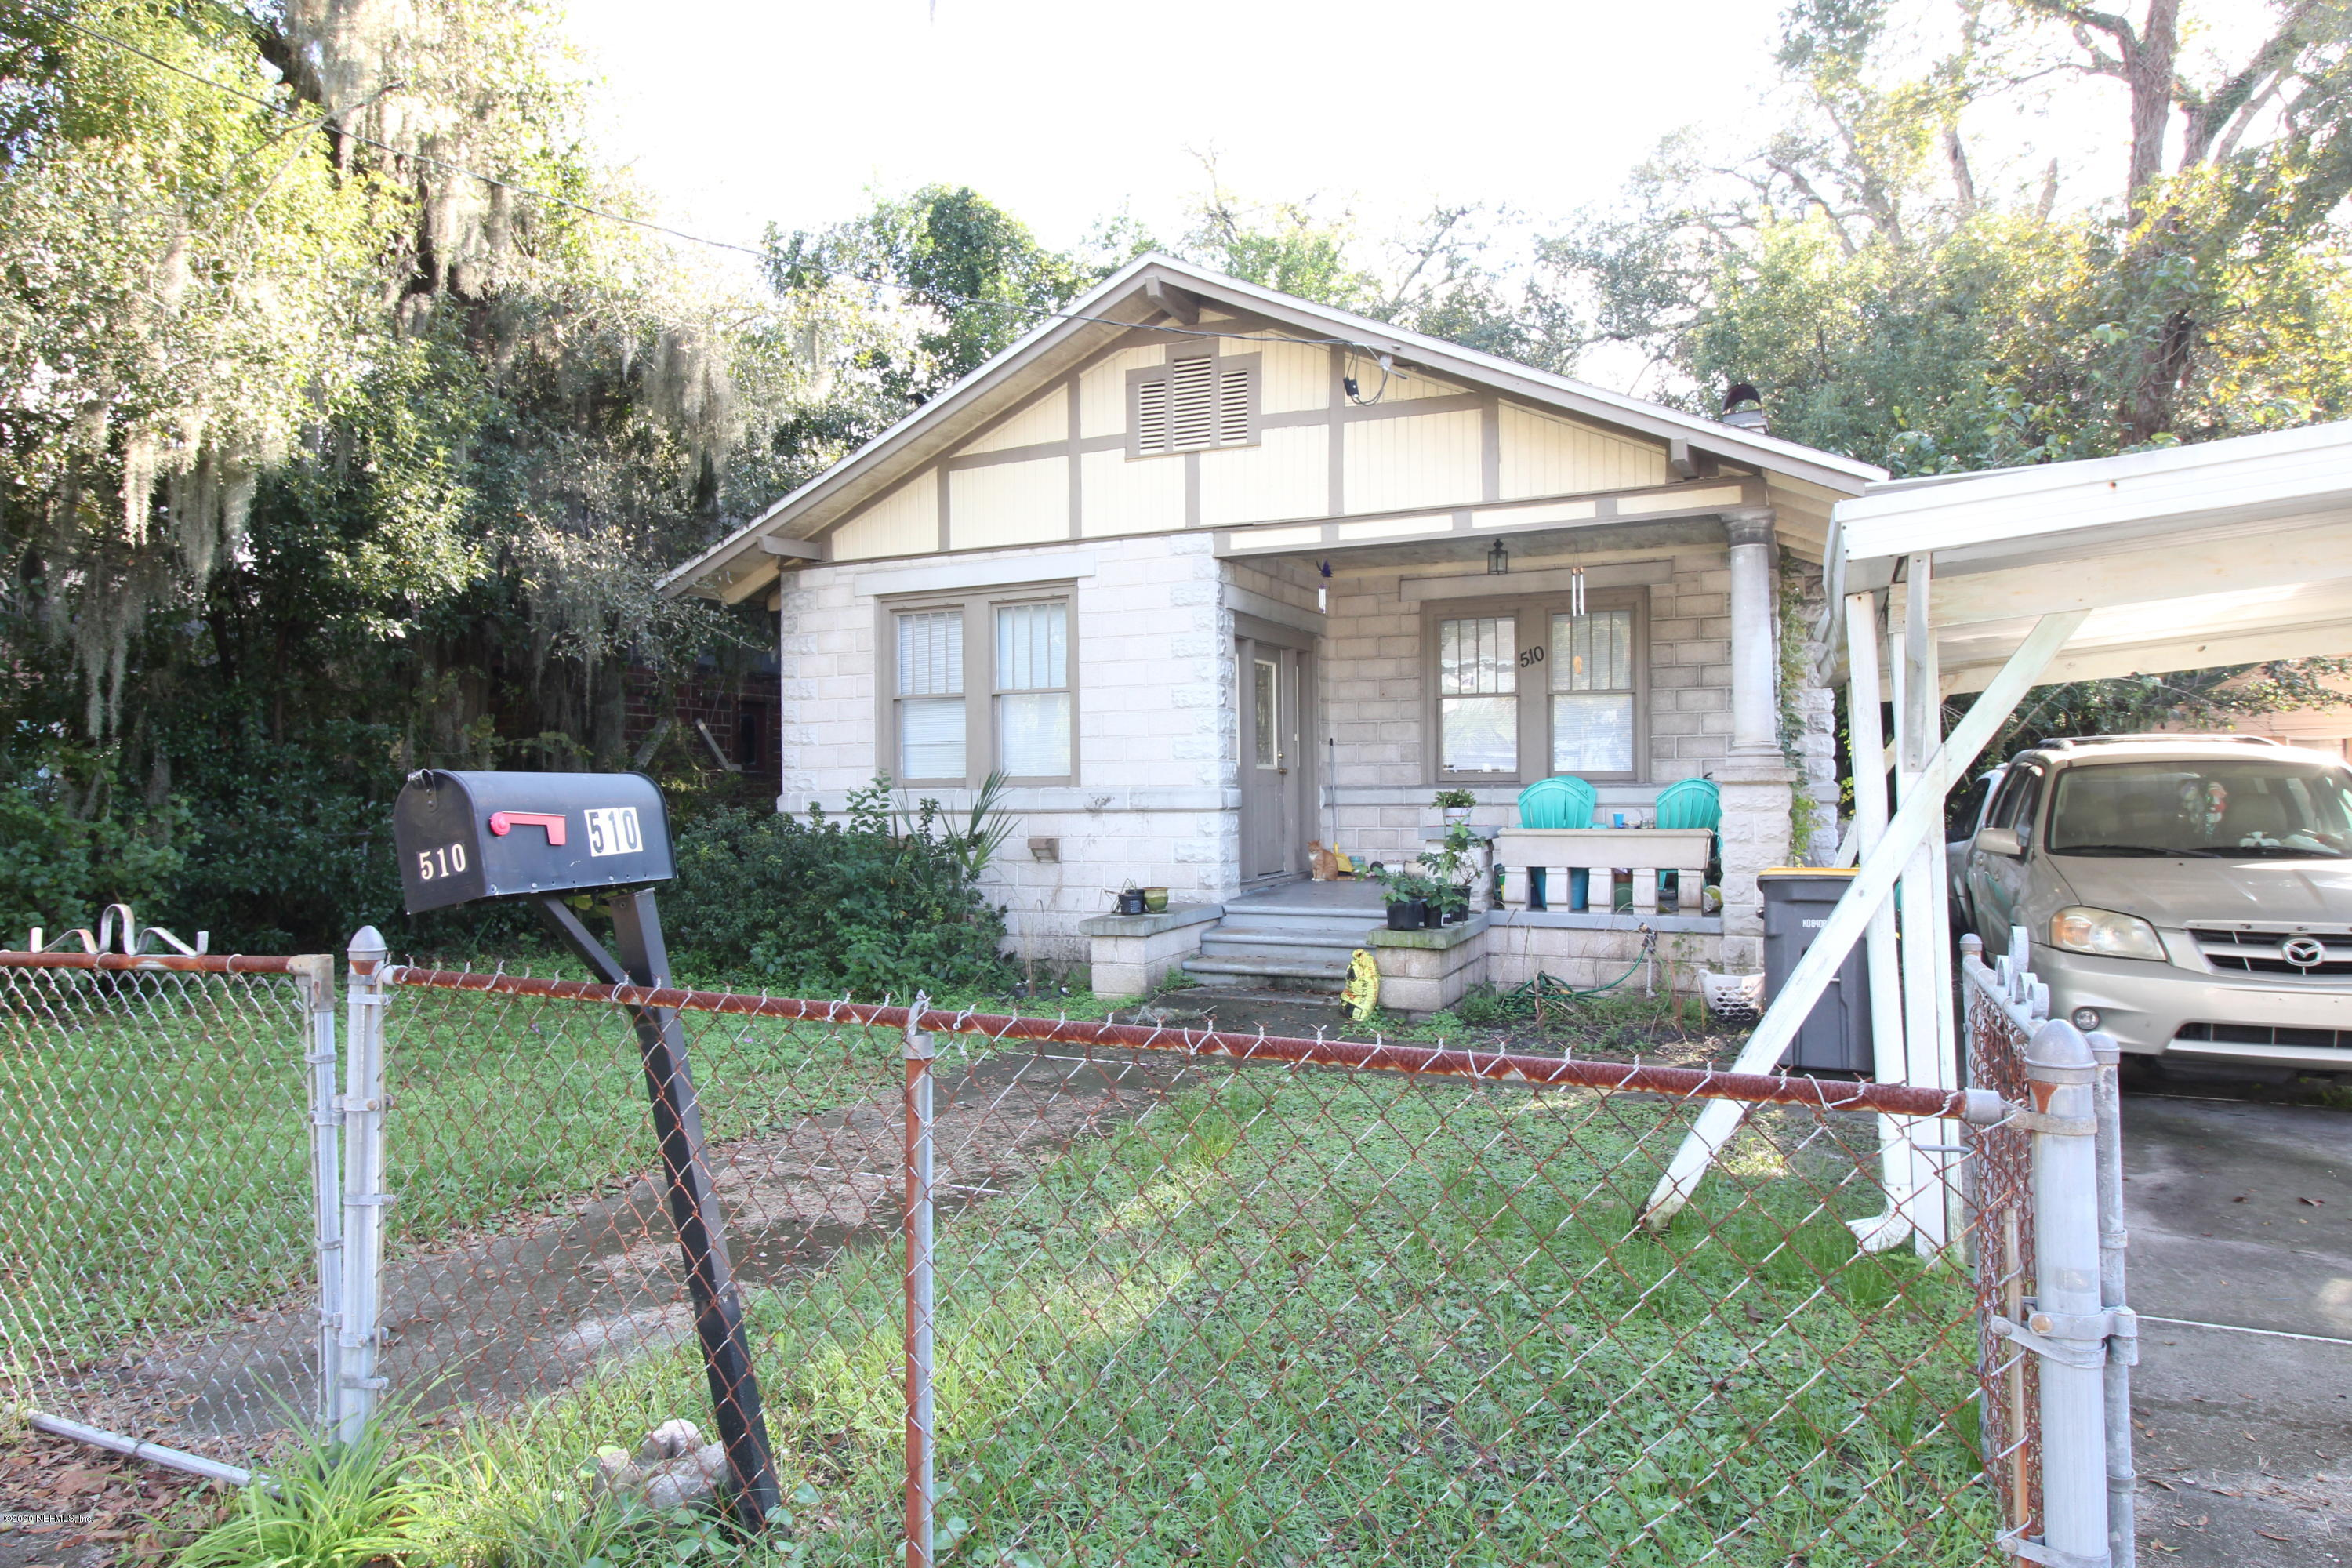 510 WOODBINE, JACKSONVILLE, FLORIDA 32206, 3 Bedrooms Bedrooms, ,1 BathroomBathrooms,Residential,For sale,WOODBINE,1083058